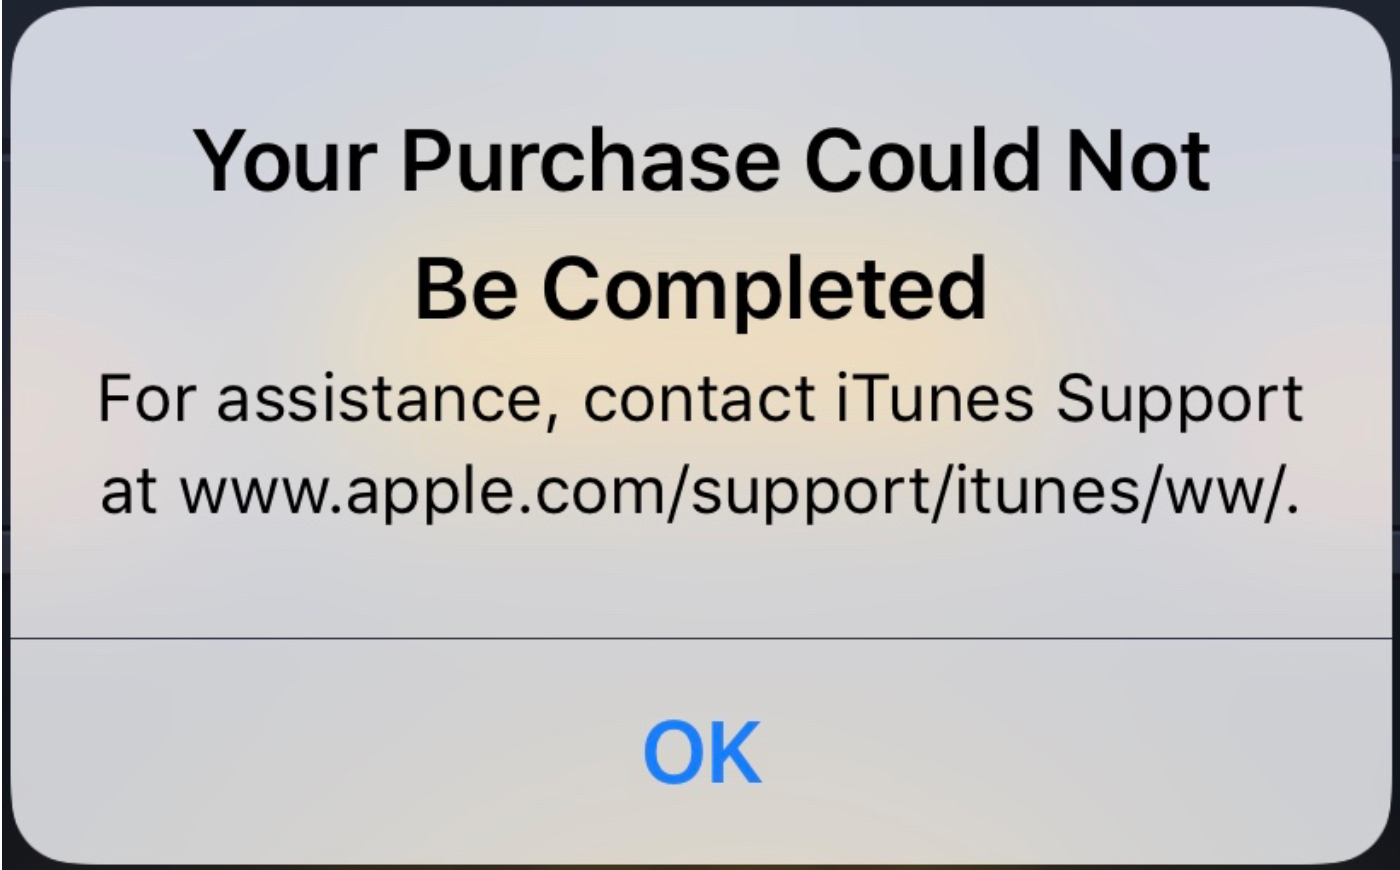 Your Purchase Could Not Be Completed Message